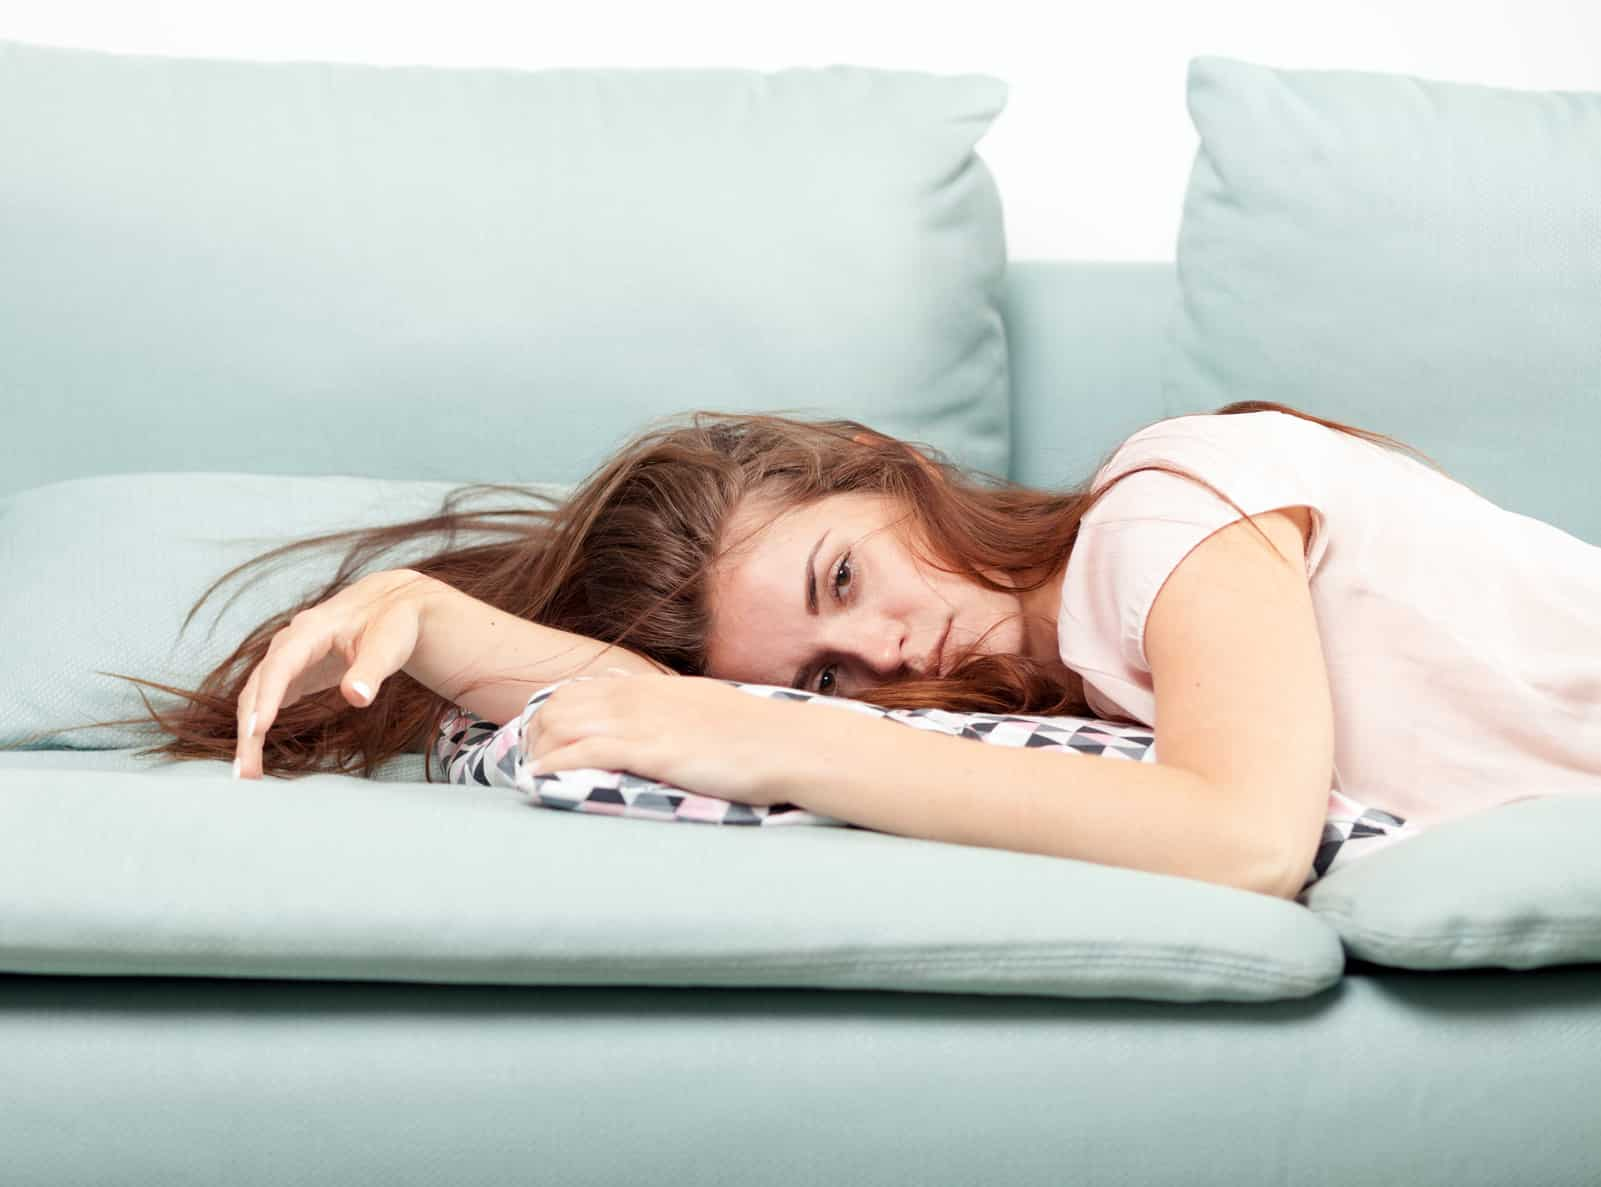 Exhausted young woman lying on couch at home, casual style indoor shoot